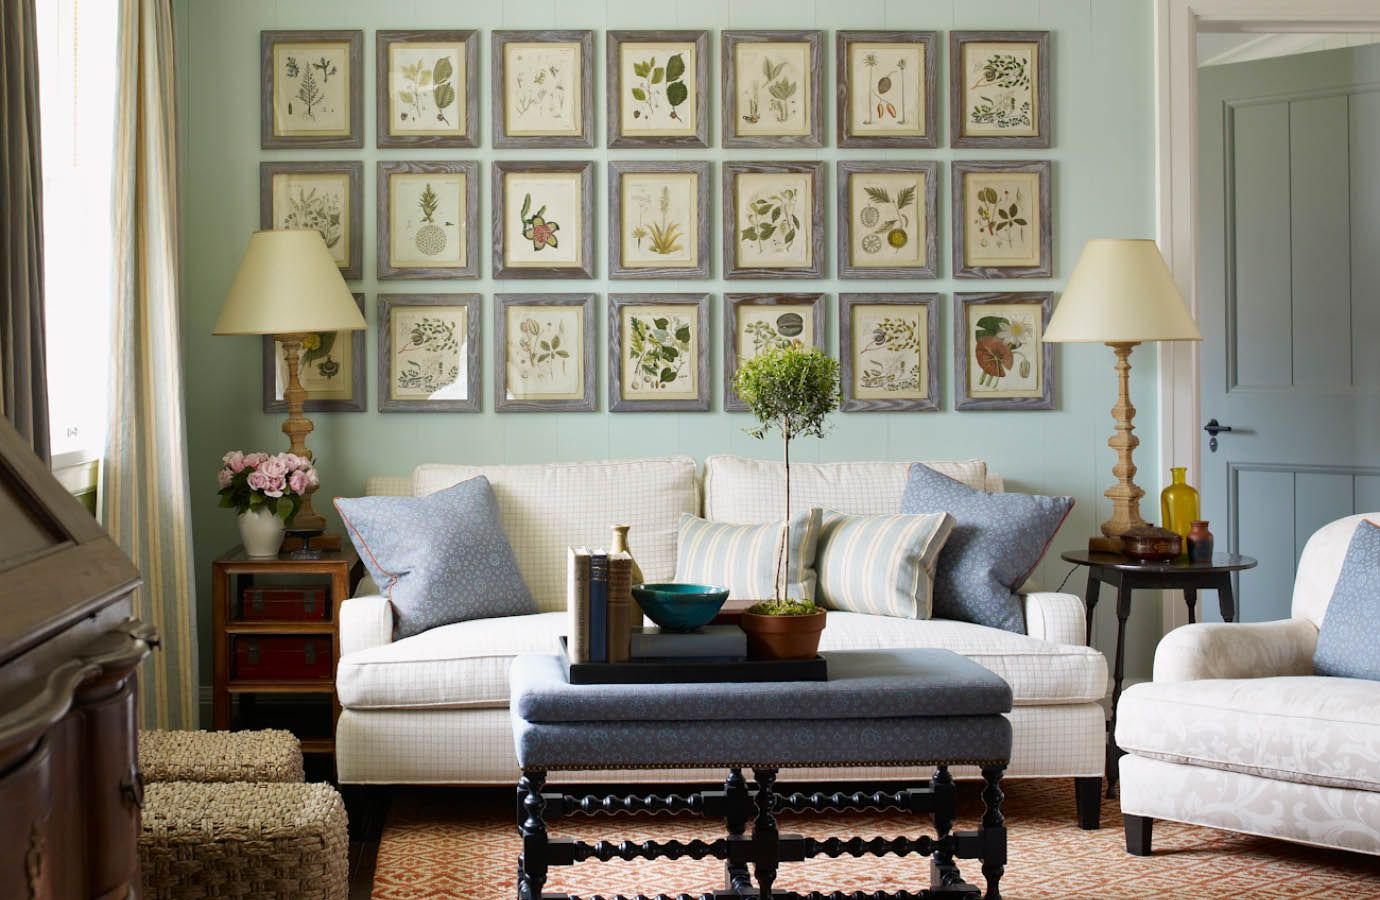 Stunning gallery wall with botanical prints - Interior Designer S.R.